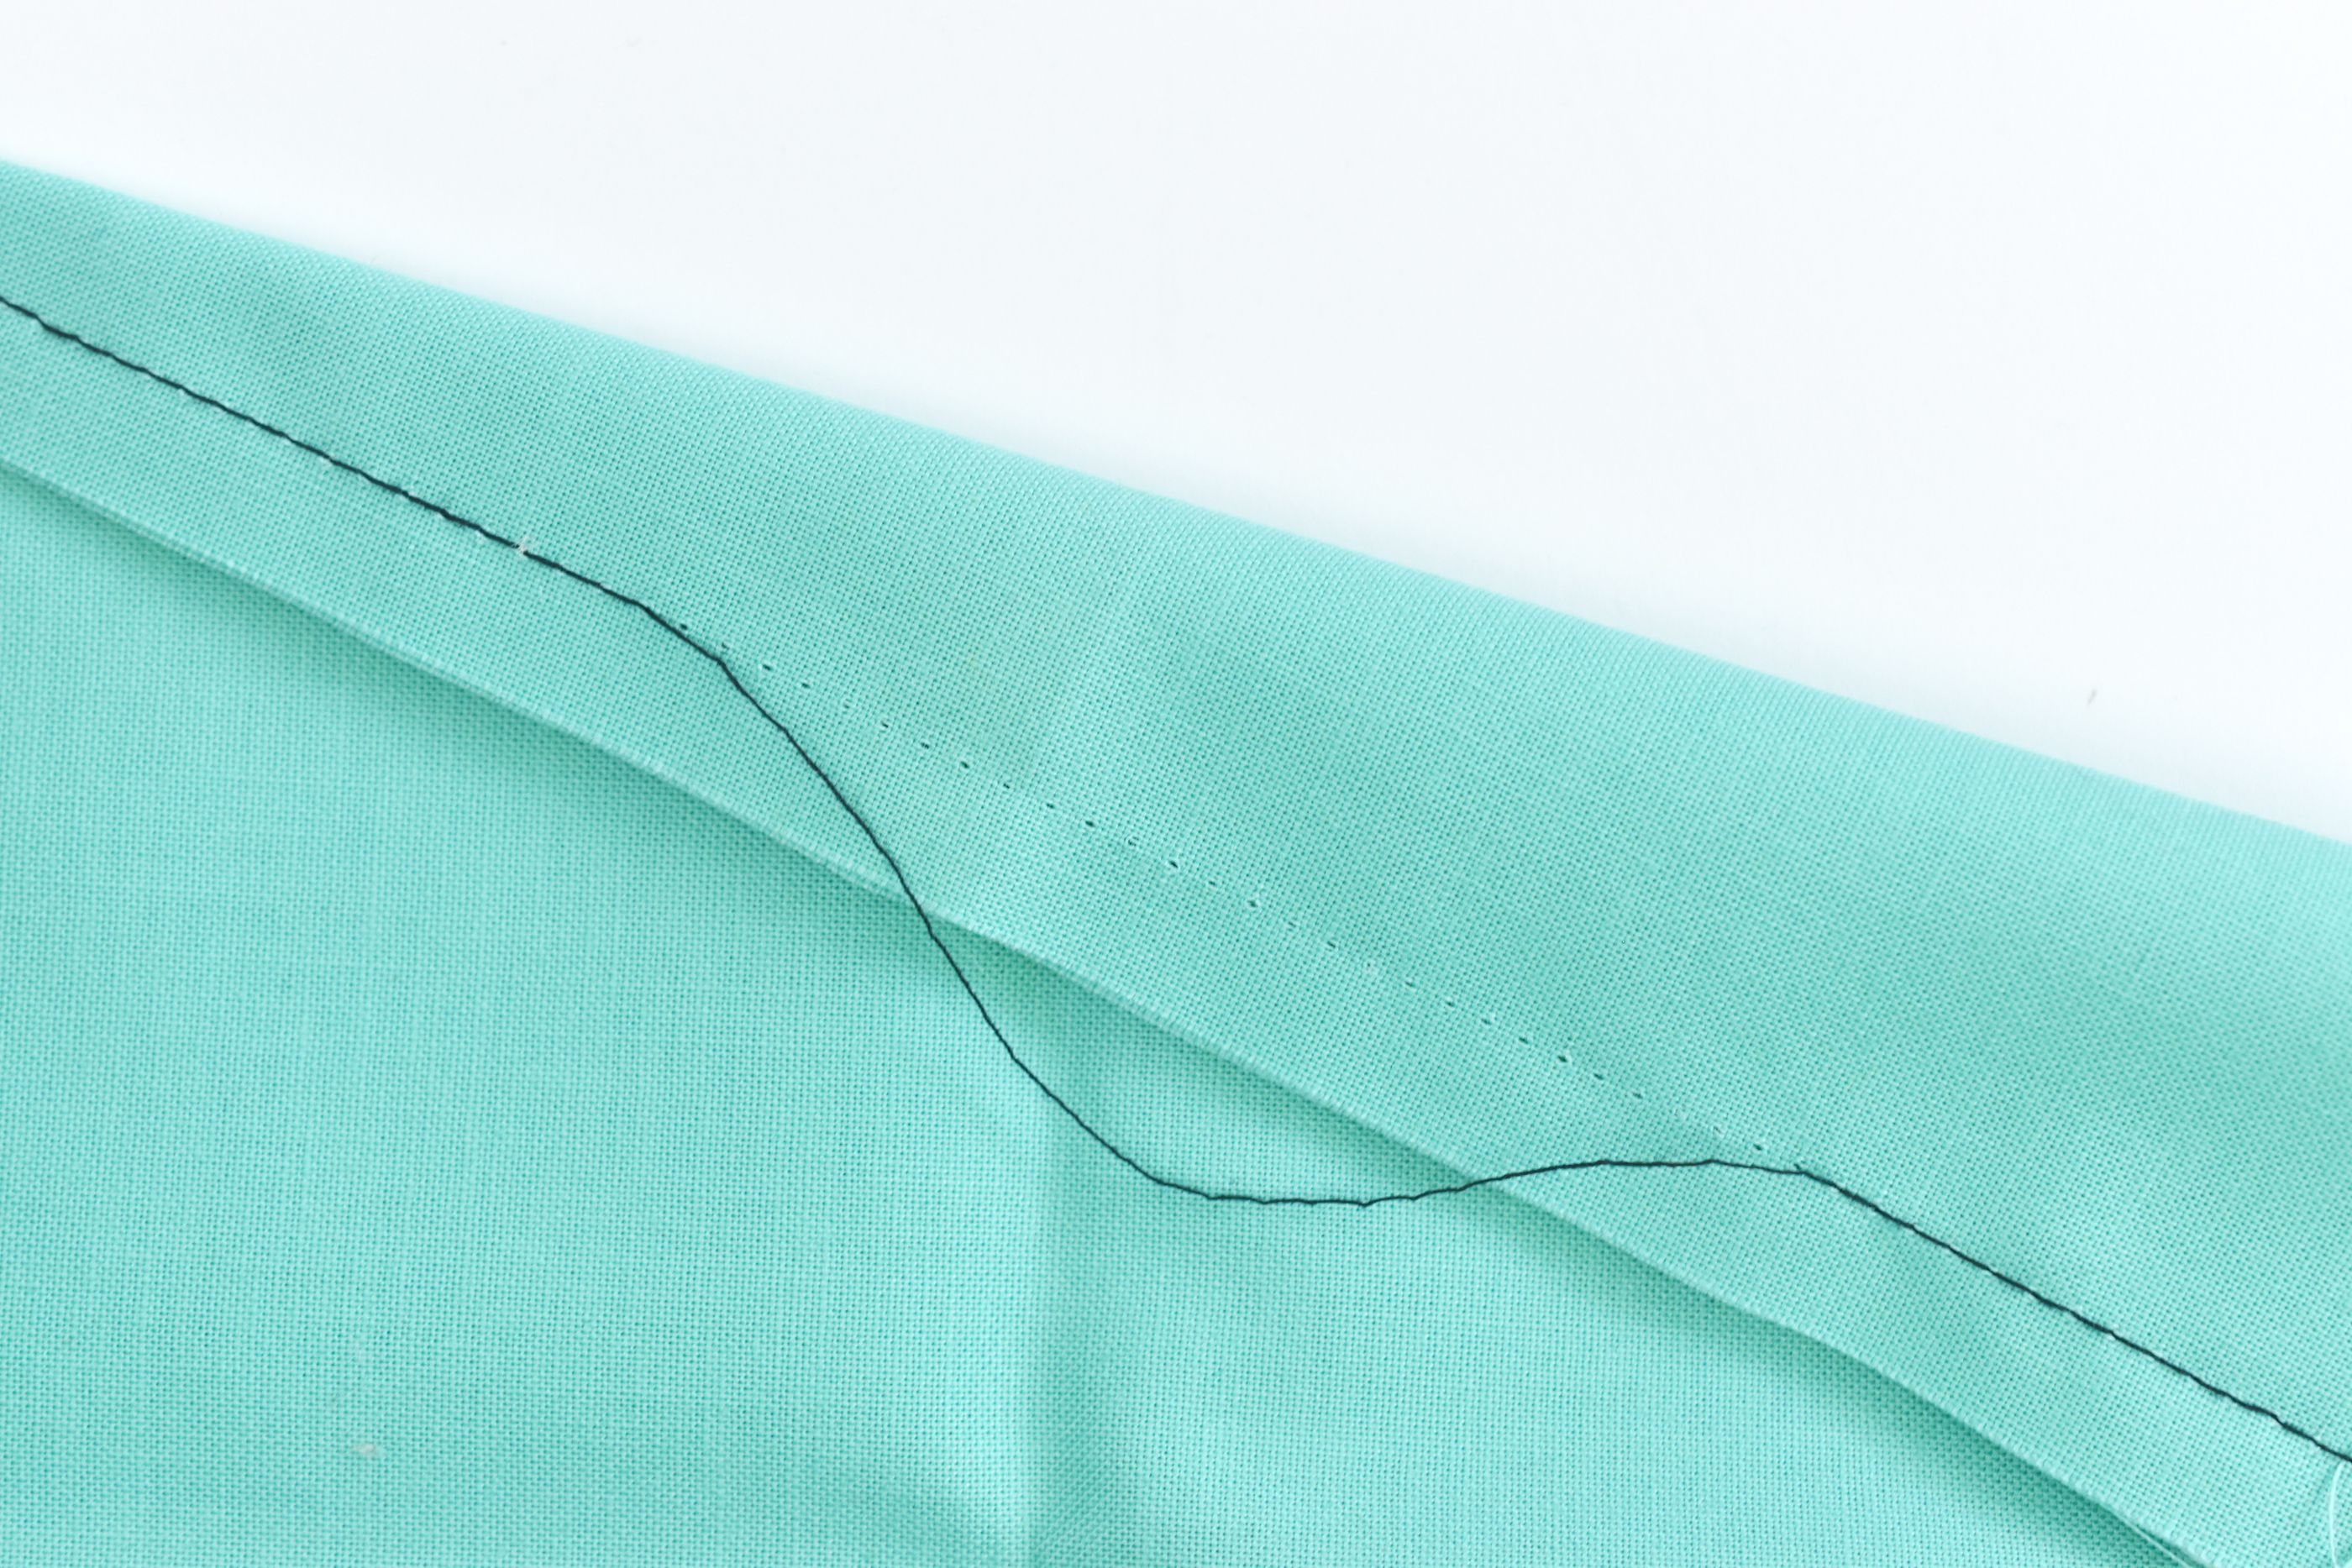 Loose Thread on the Back of the Seam